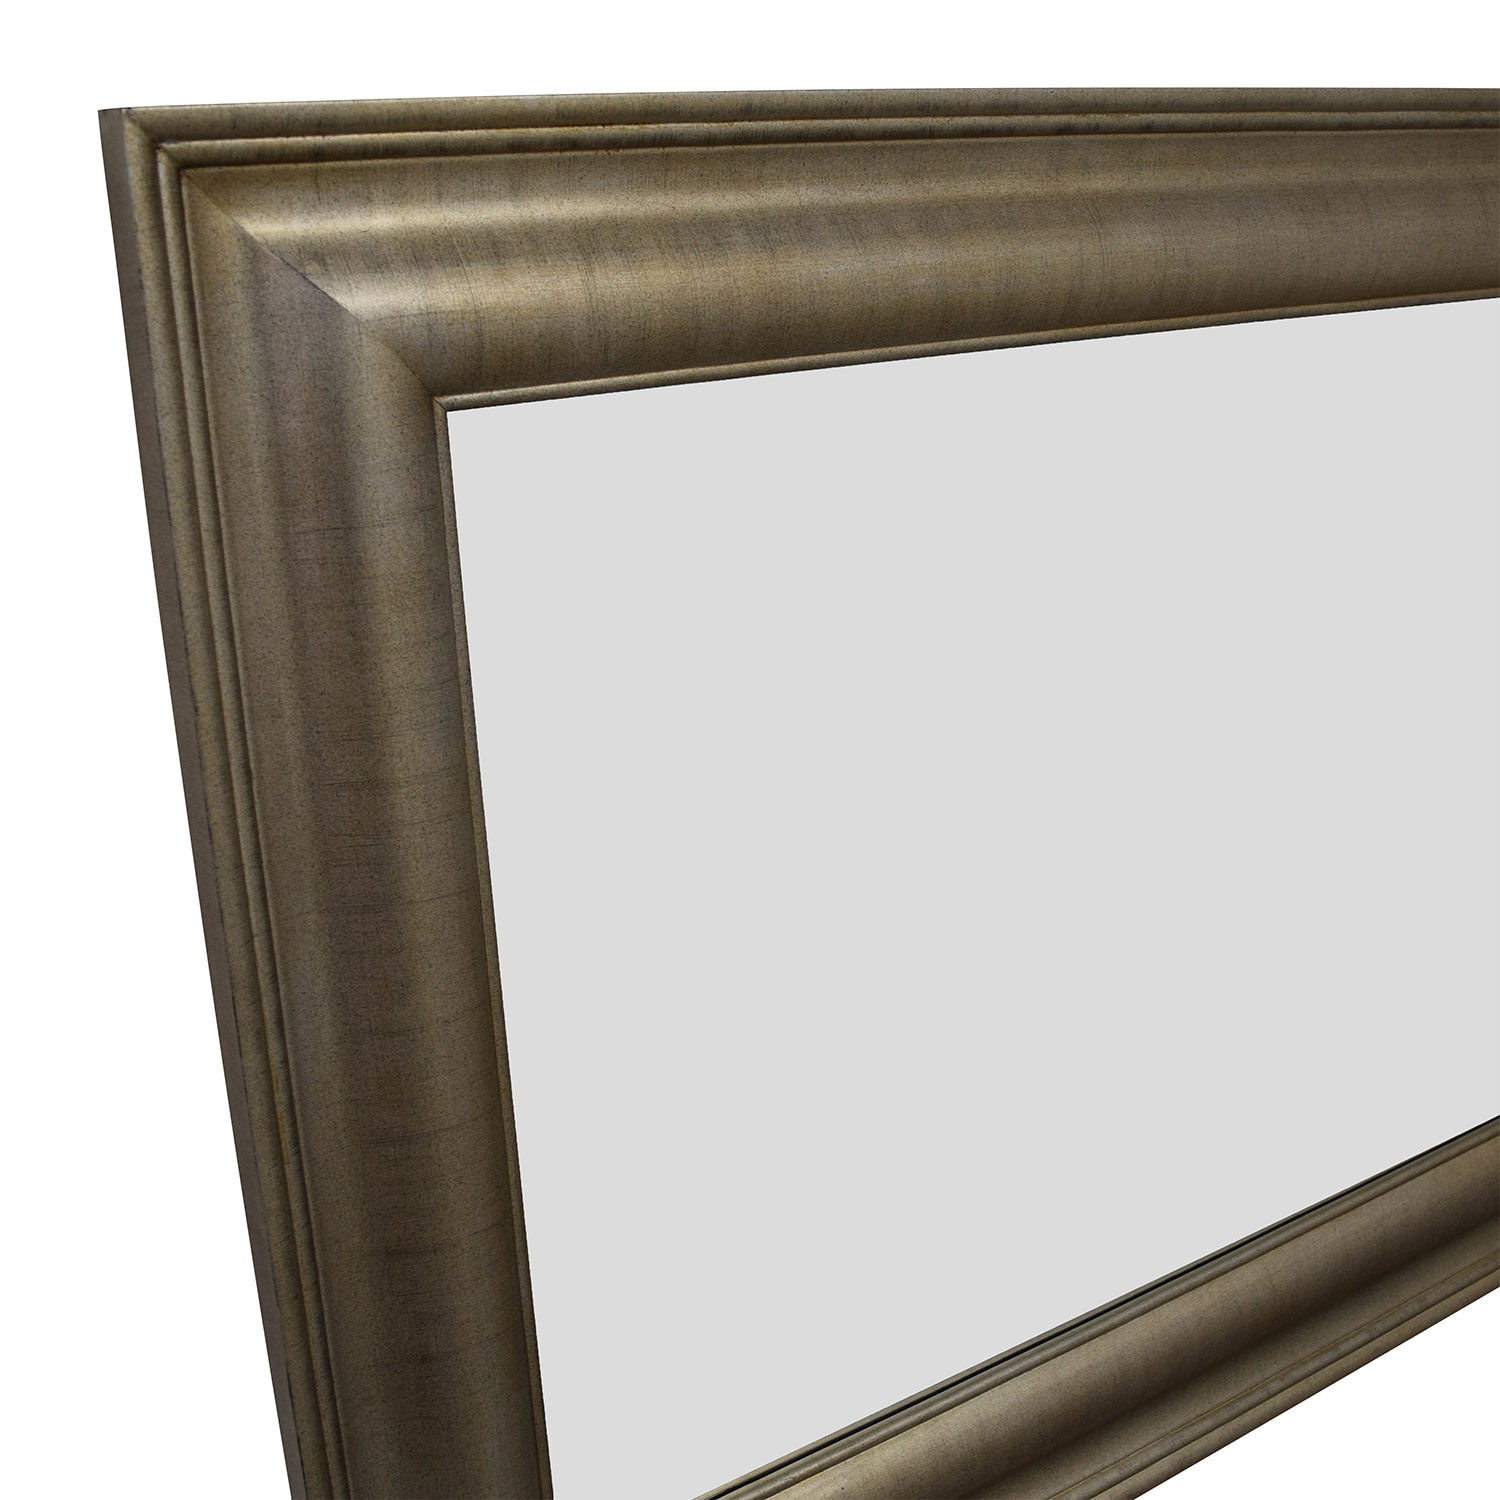 86% OFF The Bombay pany The Bombay pany Geffye Wall Mirror